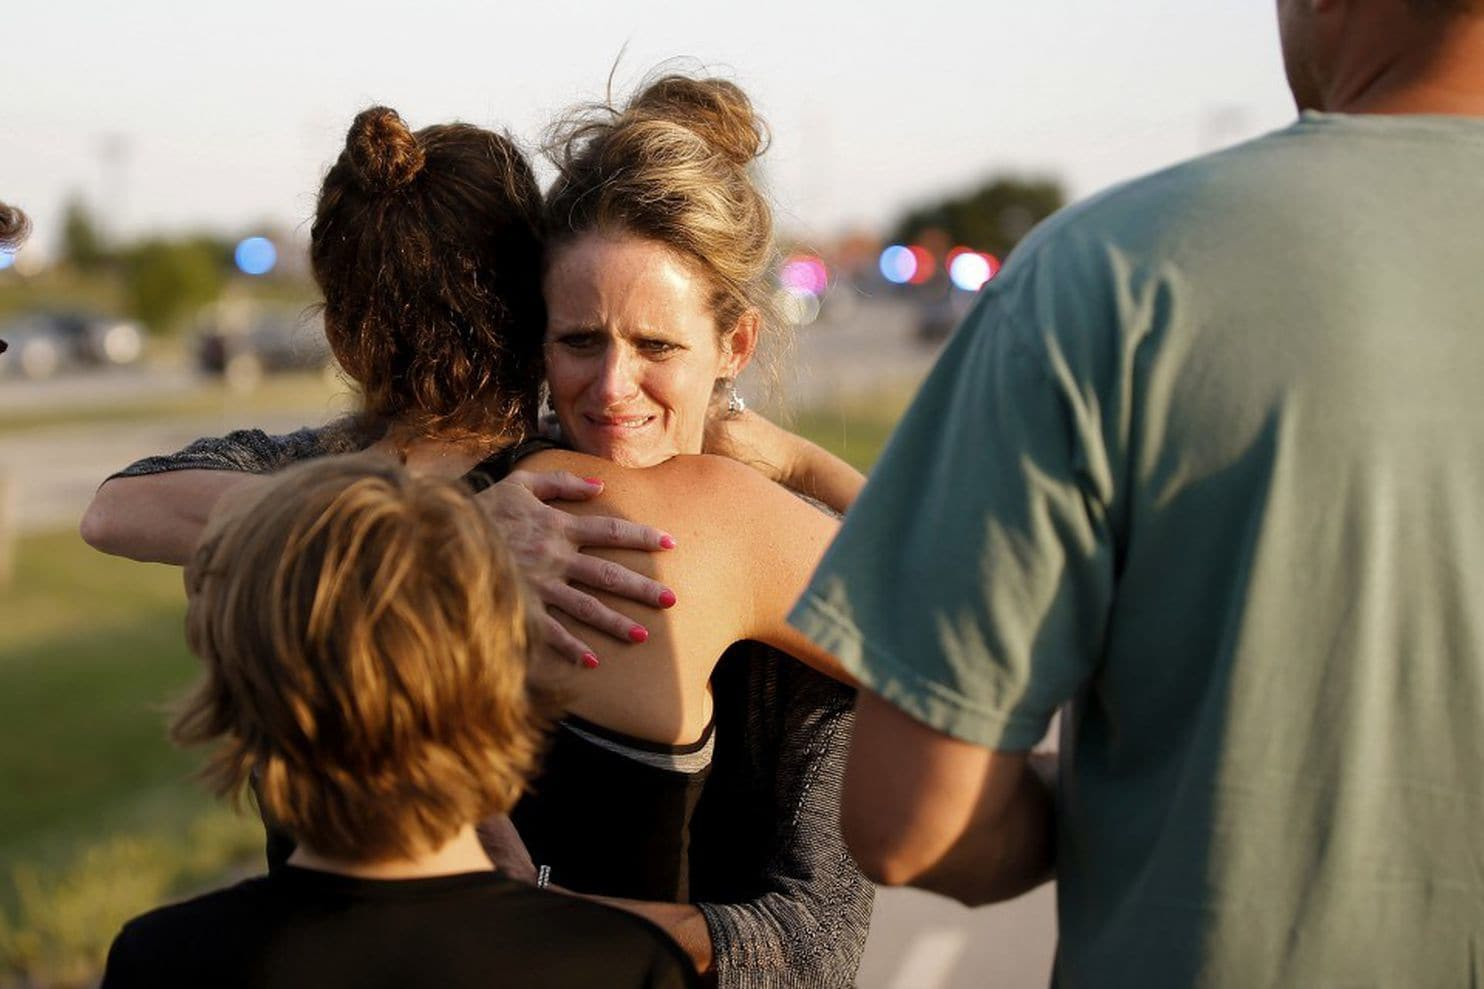 Bystanders killed a gunman who fired into a restaurant. The NRA praised good guys with guns.